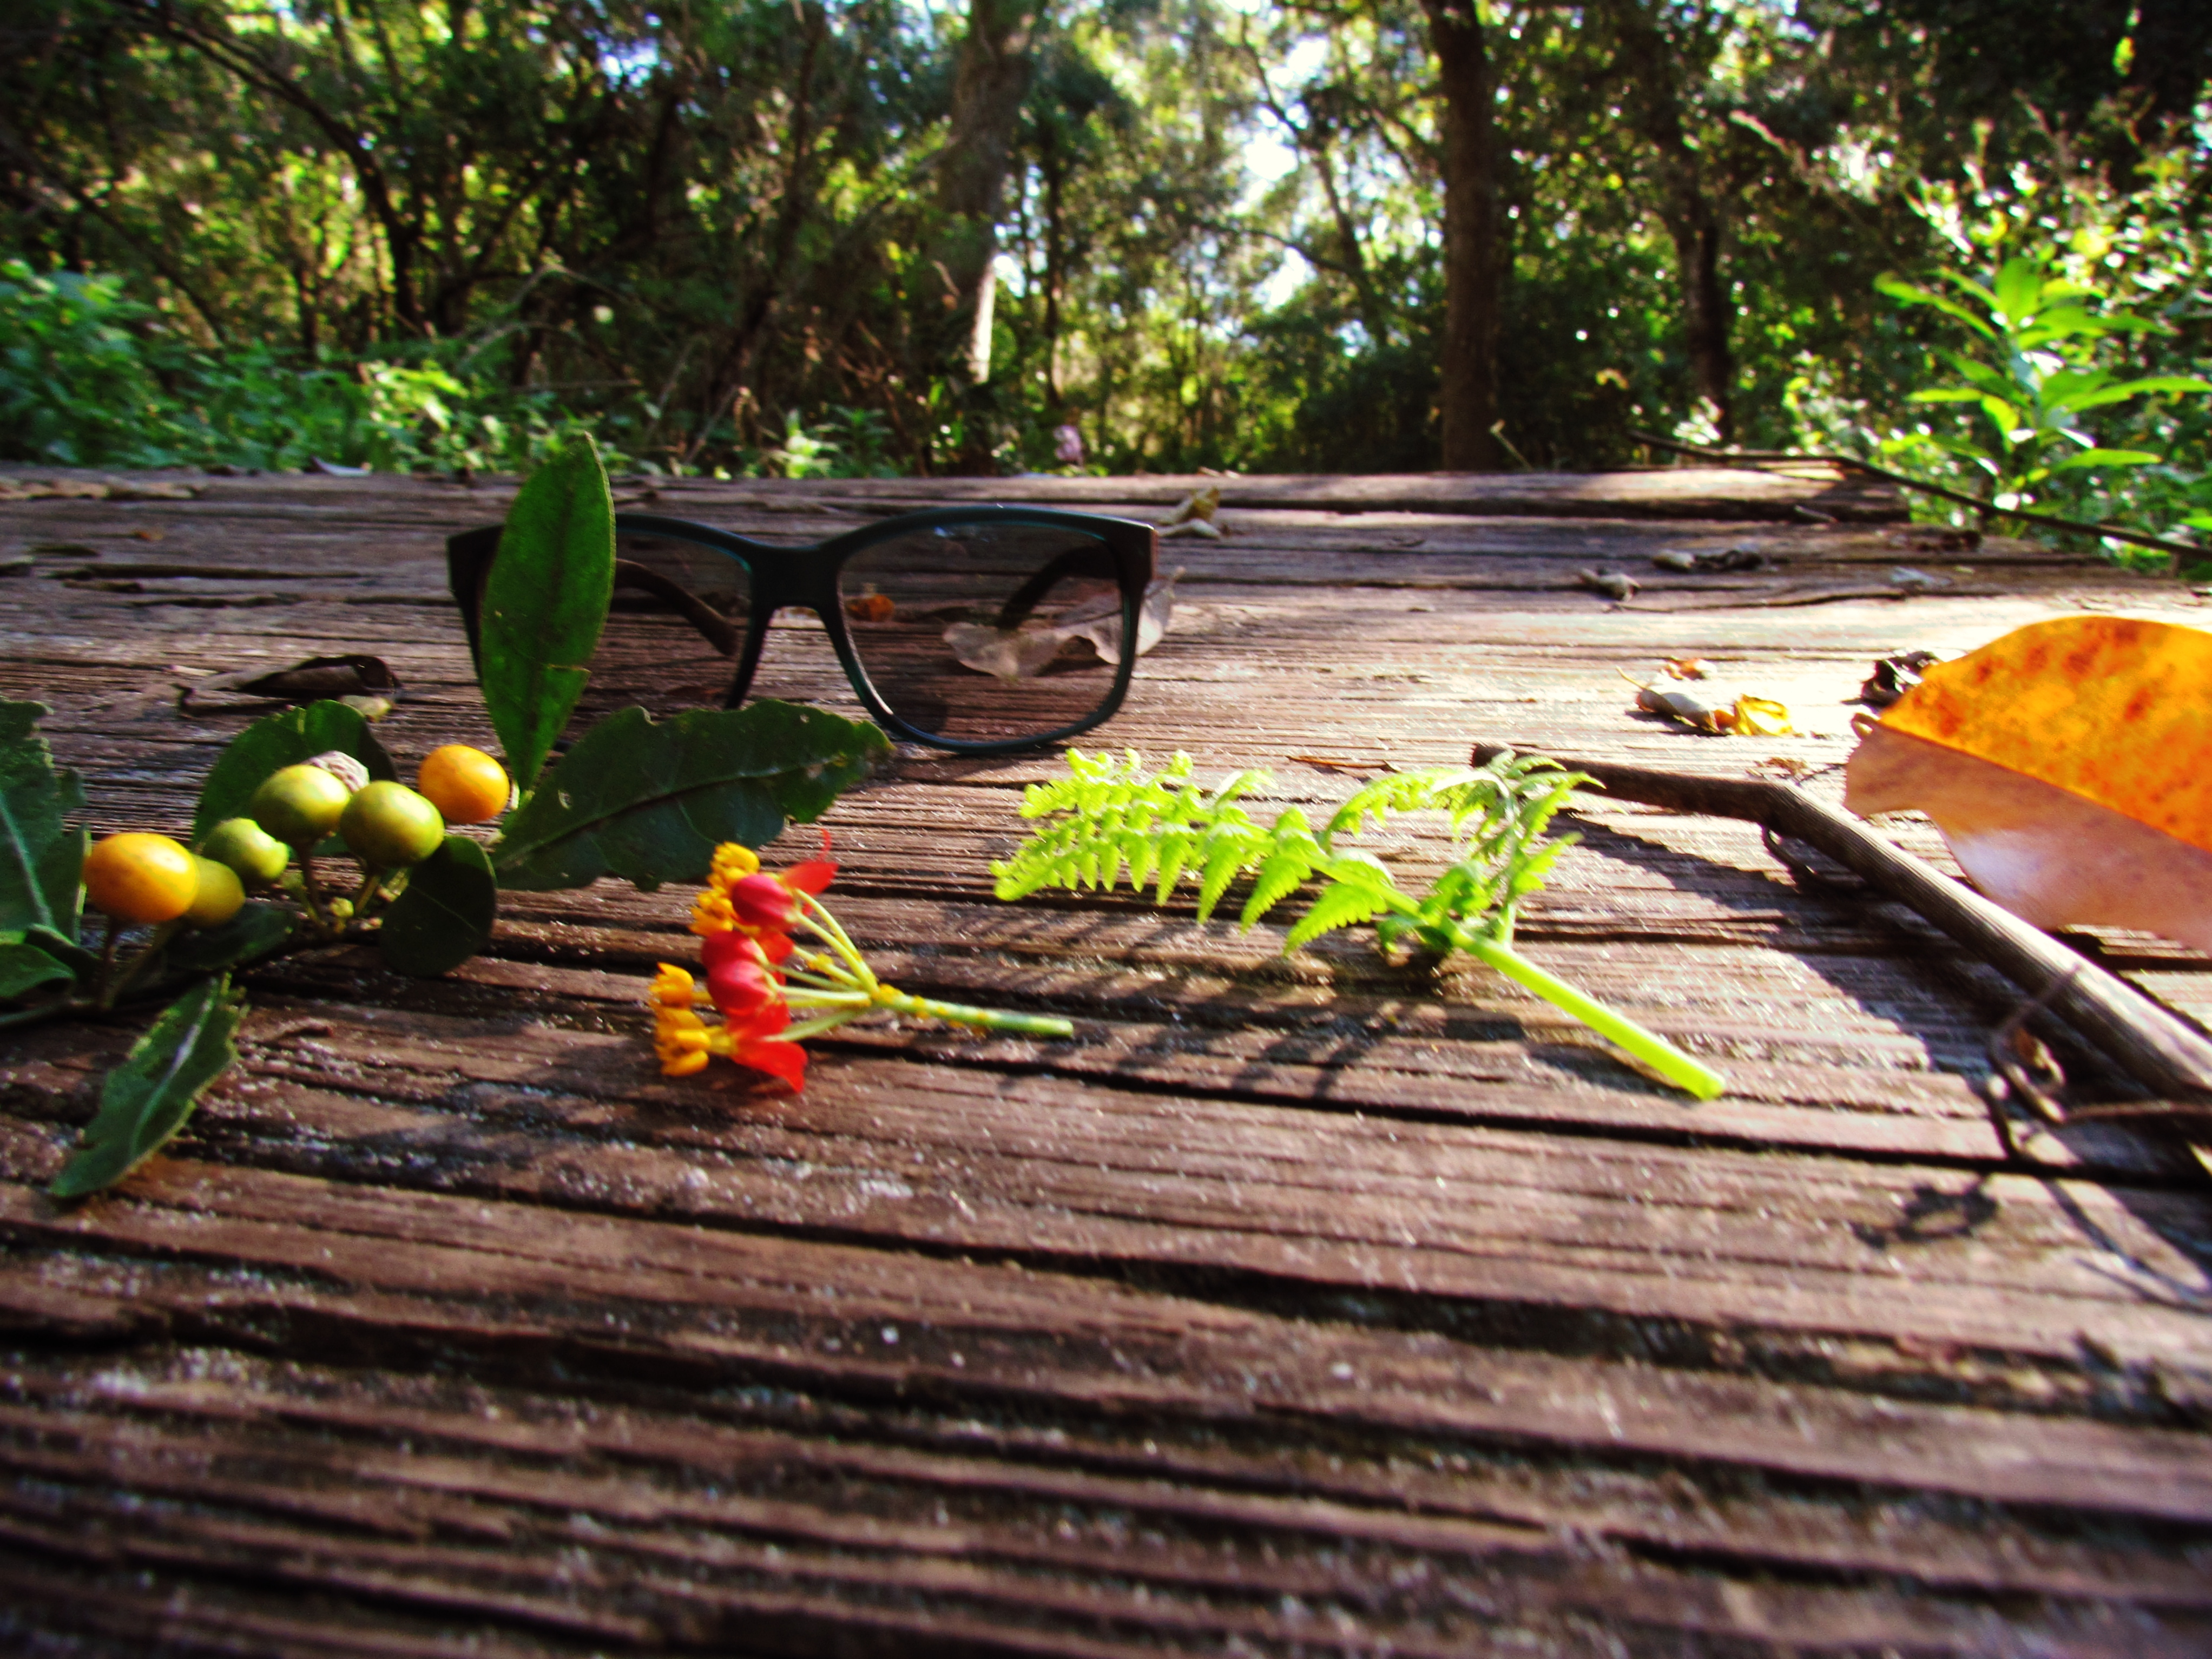 Sunglasses on a wooden boardwalk in mother nature with golden berries and sticks and twigs